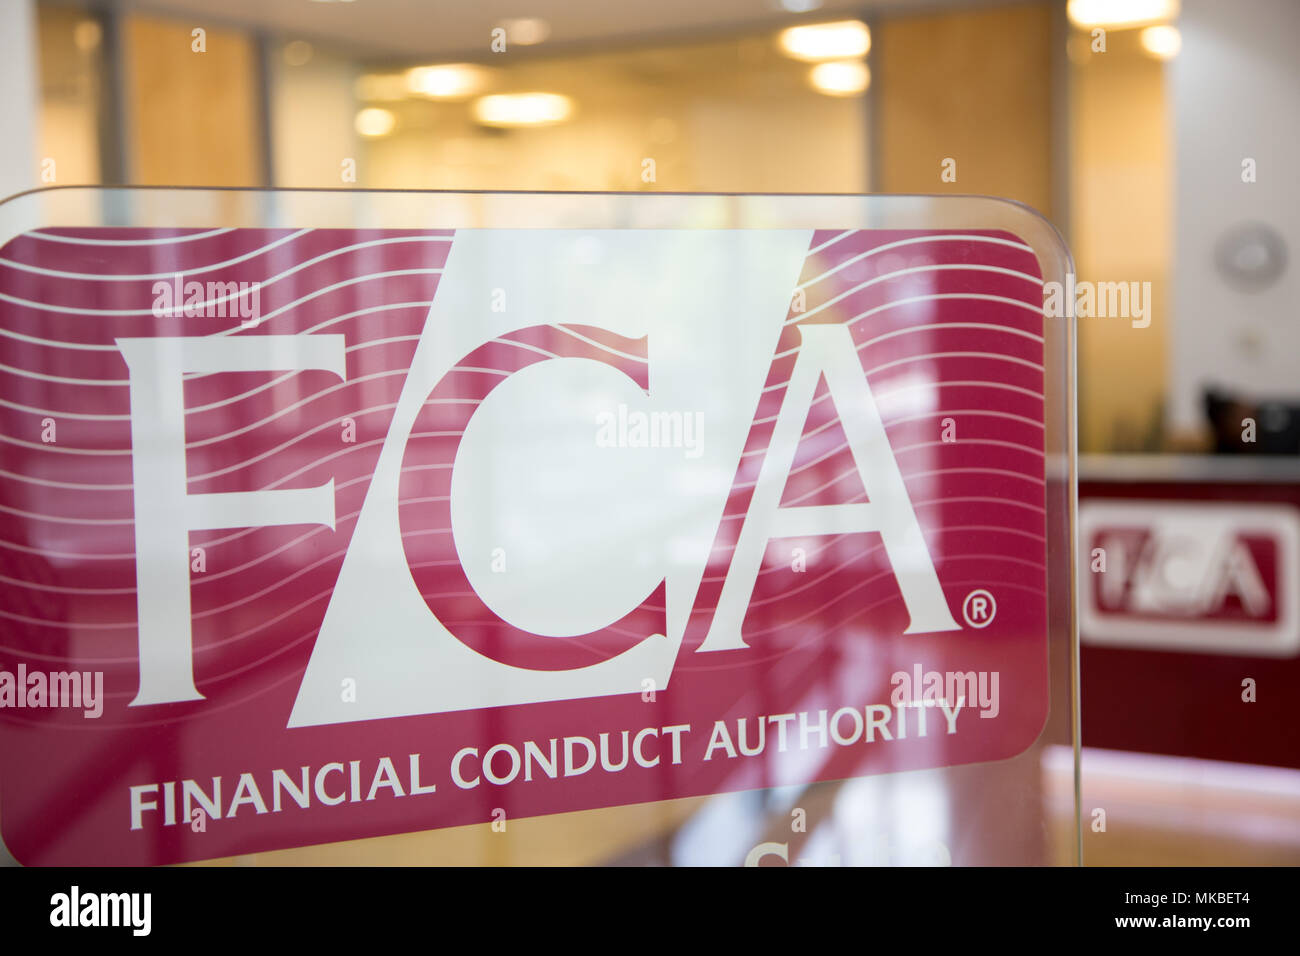 Financial Conduct Authority (FCA) offices, North Colonnade, Docklands, London. Upstairs reception showing corporate logo - Stock Image